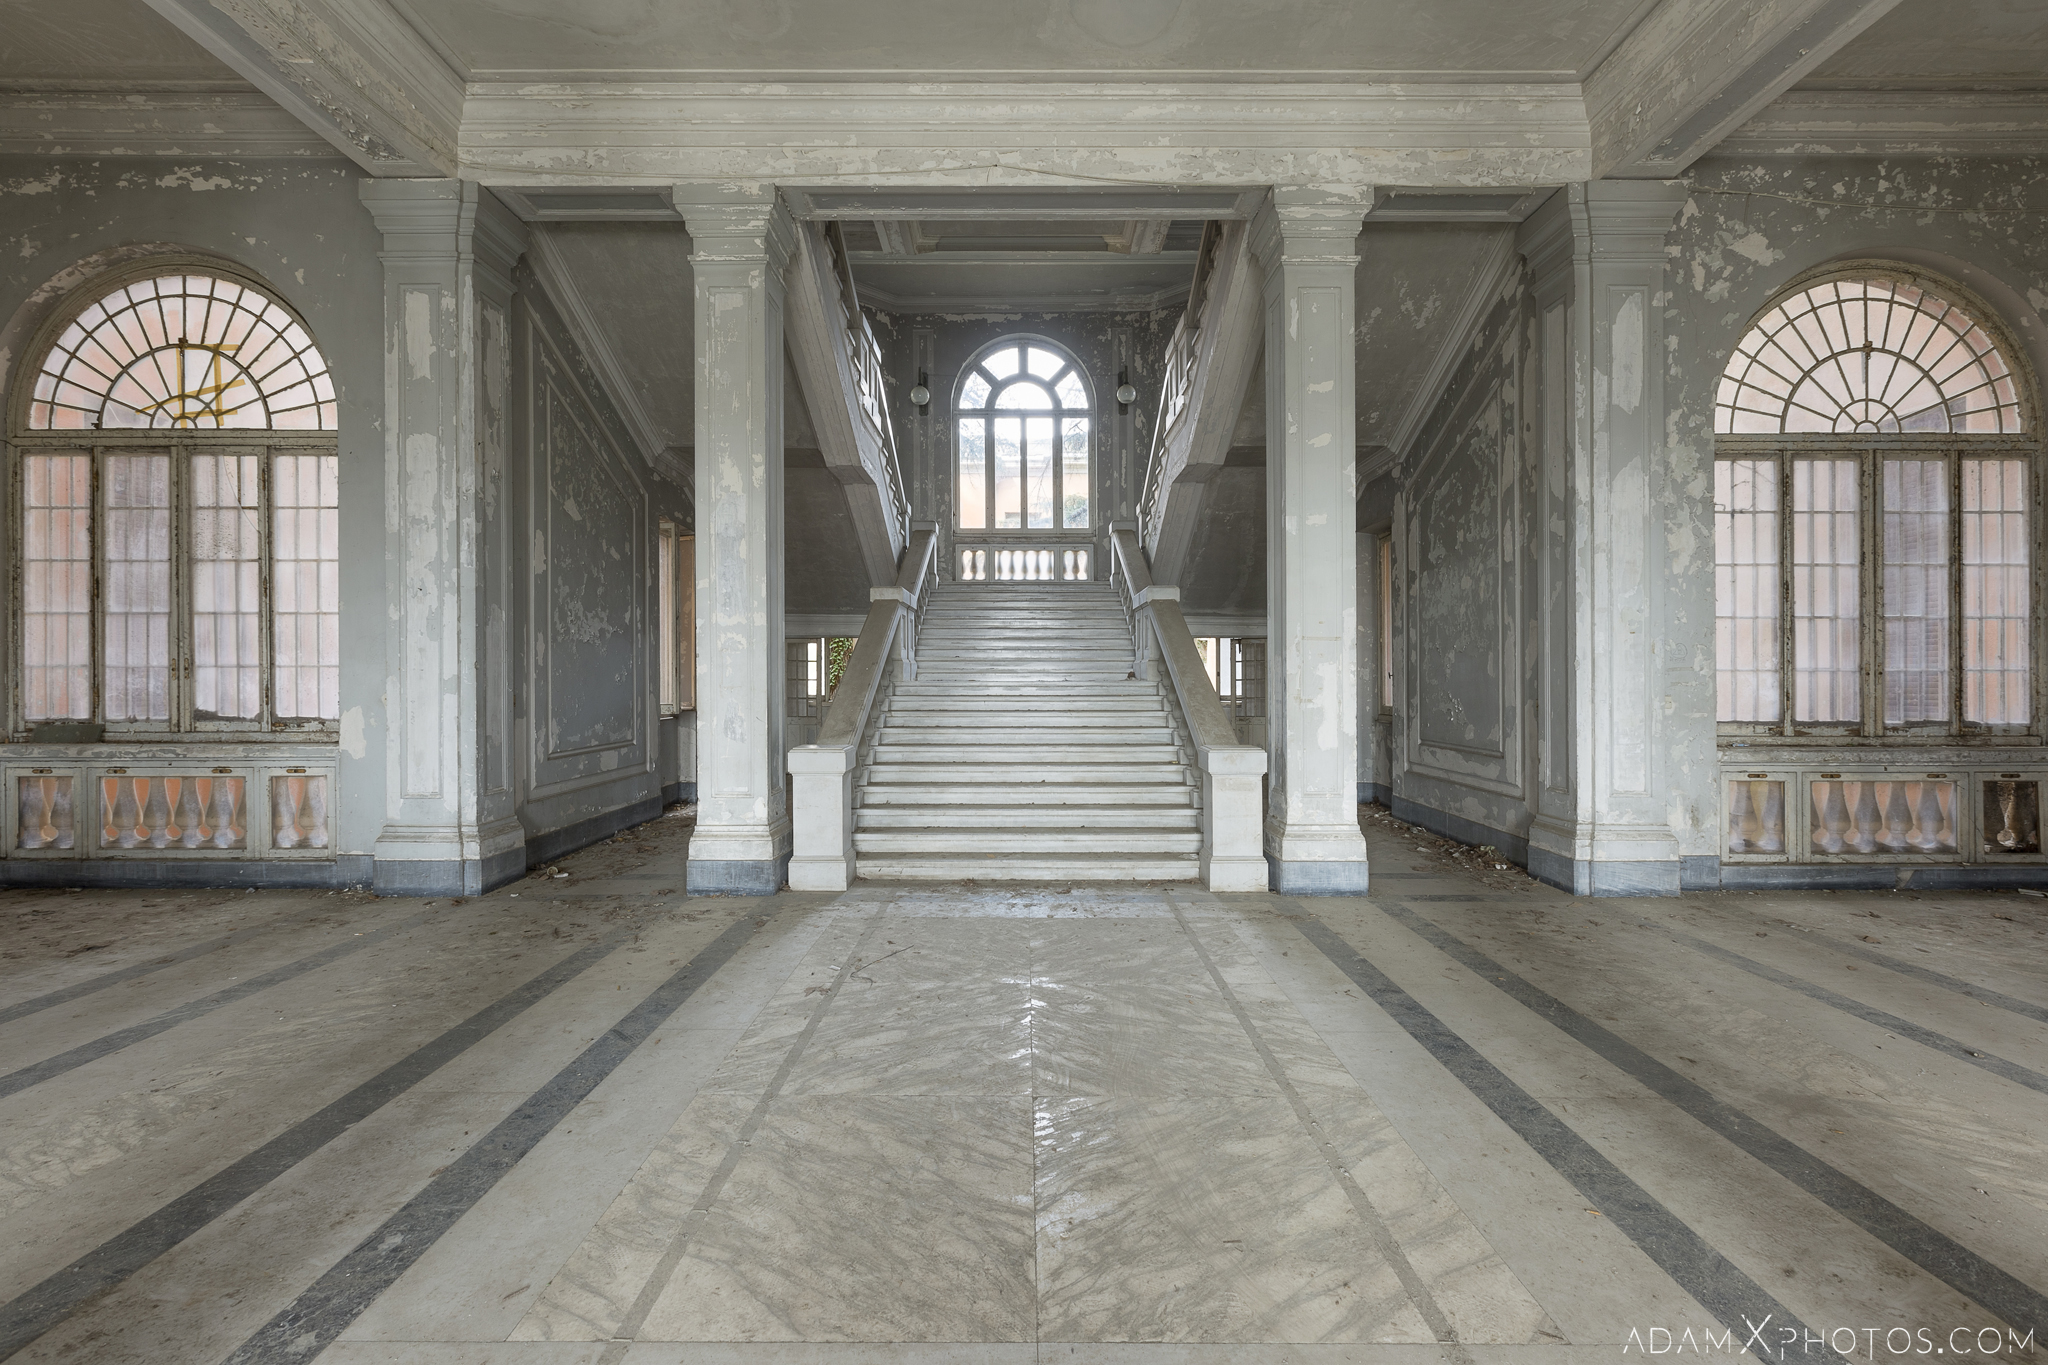 Grand opulent entrance hall lobby foyer stairs staircase windows ospedale psichiatrico di q manicomio di q asylum hospital Urbex Adam X Urban Exploration Italy Italia Access 2016 Abandoned decay lost forgotten Secca Security infiltration derelict location creepy haunting eerie